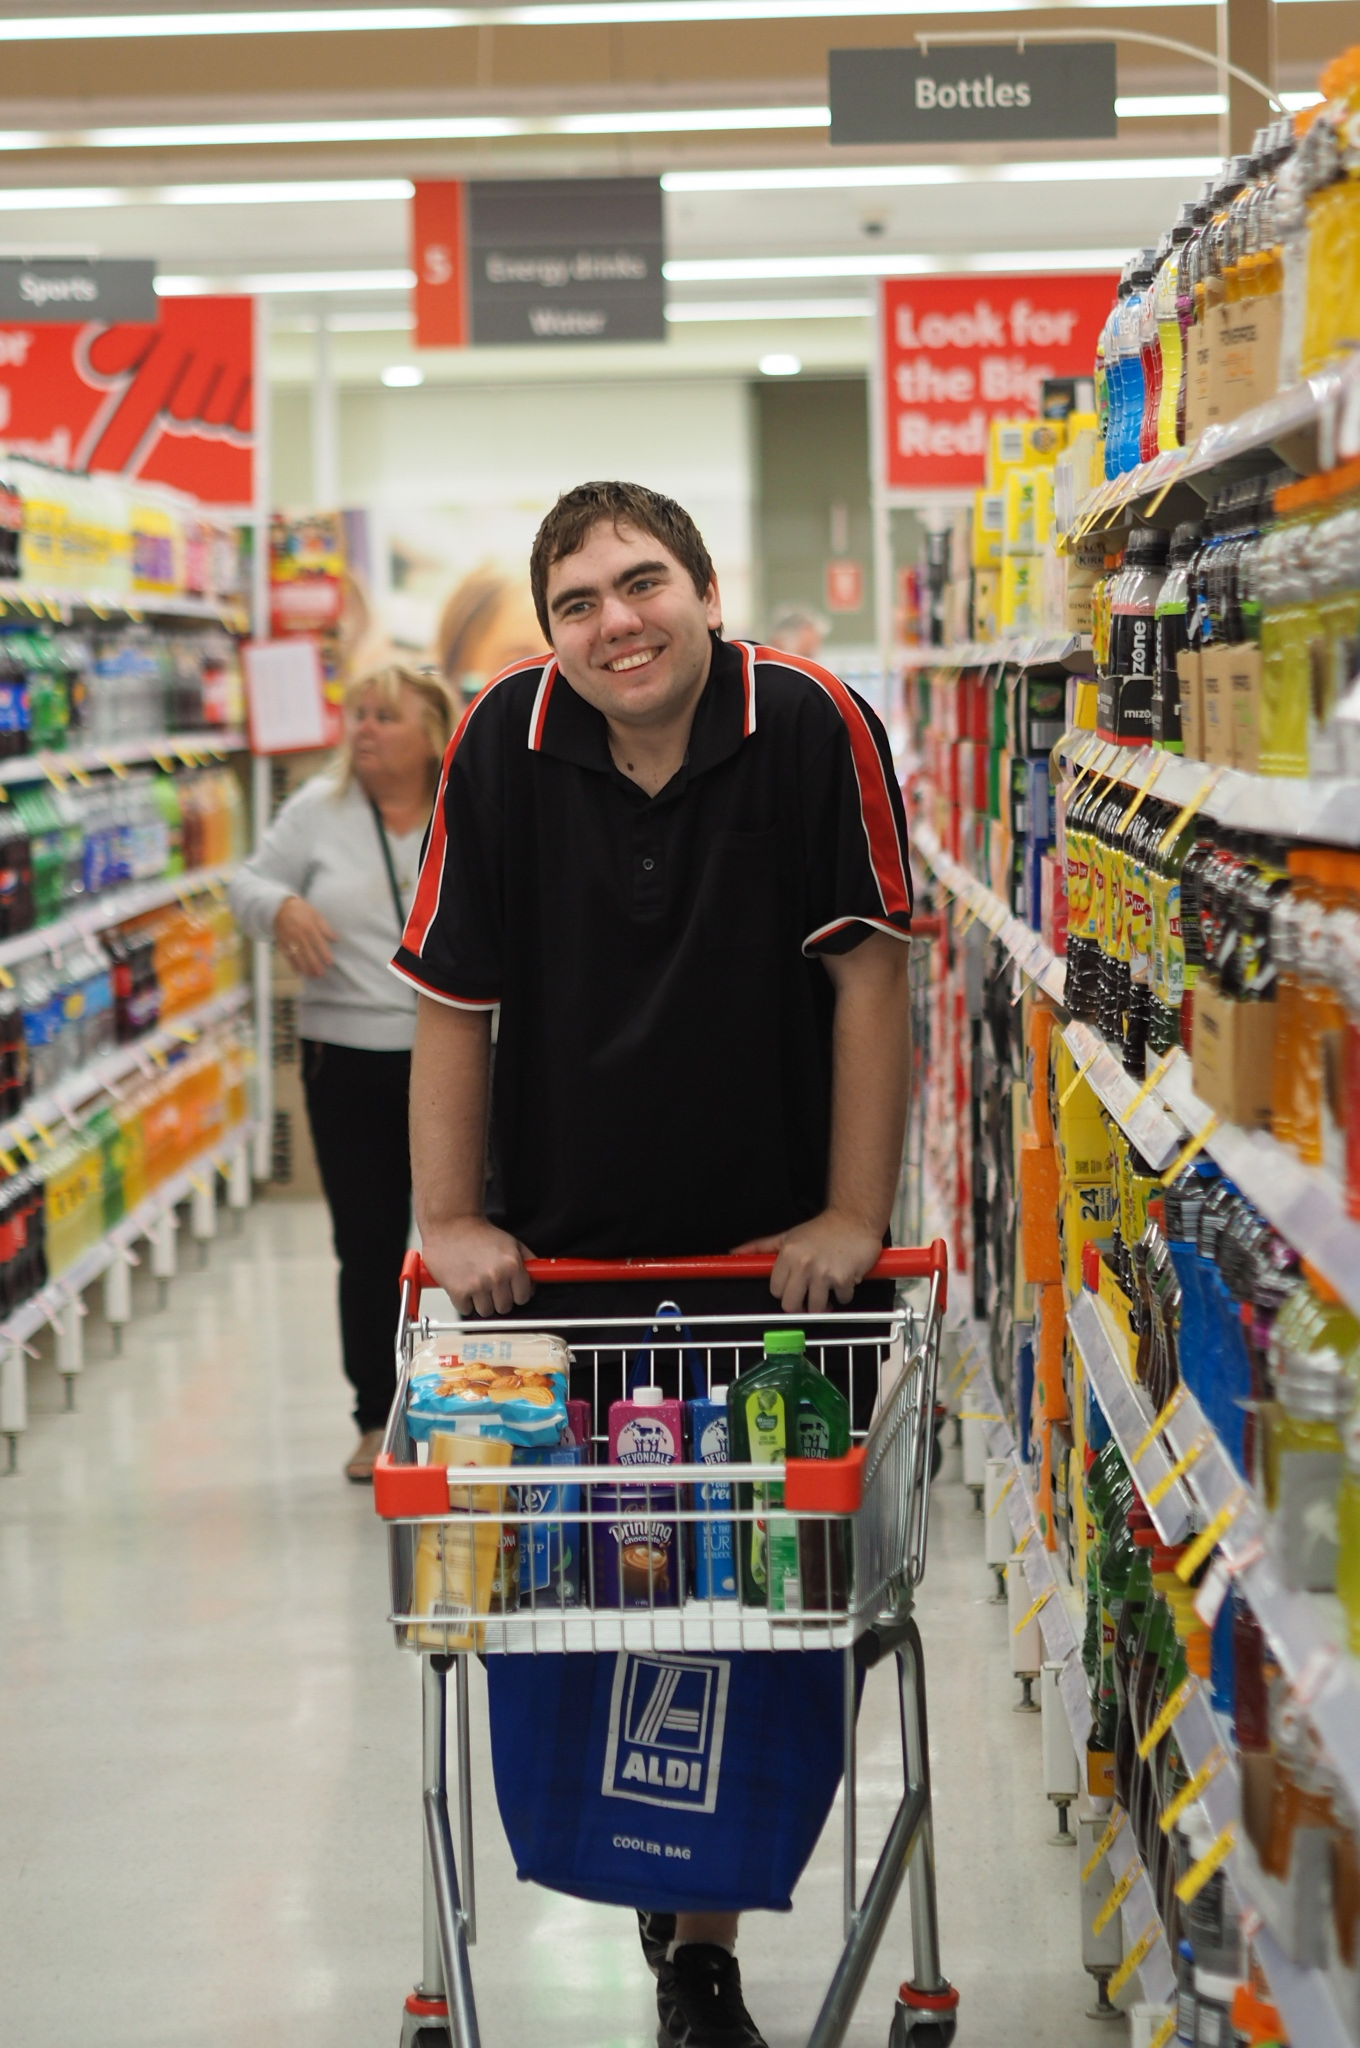 Picture of man using shopping trolley in supermarket aisle